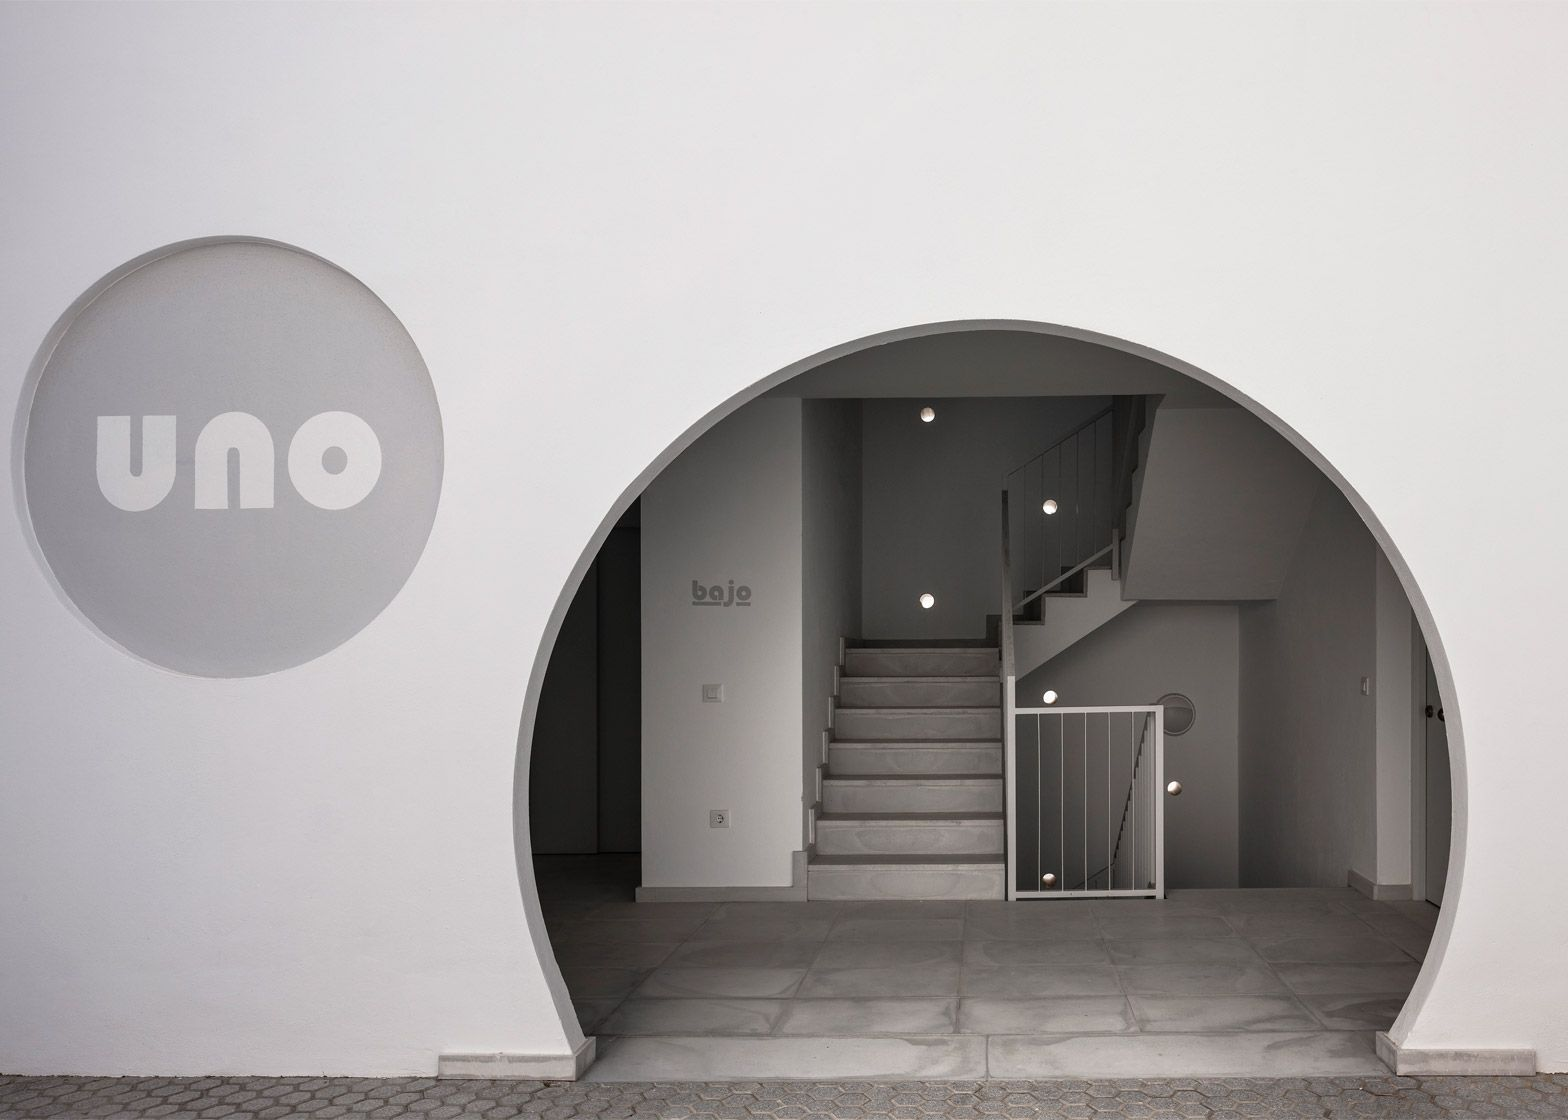 Circular openings form entrances and windows for this housing development in the Spanish town of Conil de la Frontera, designed by Seville studio Kauh